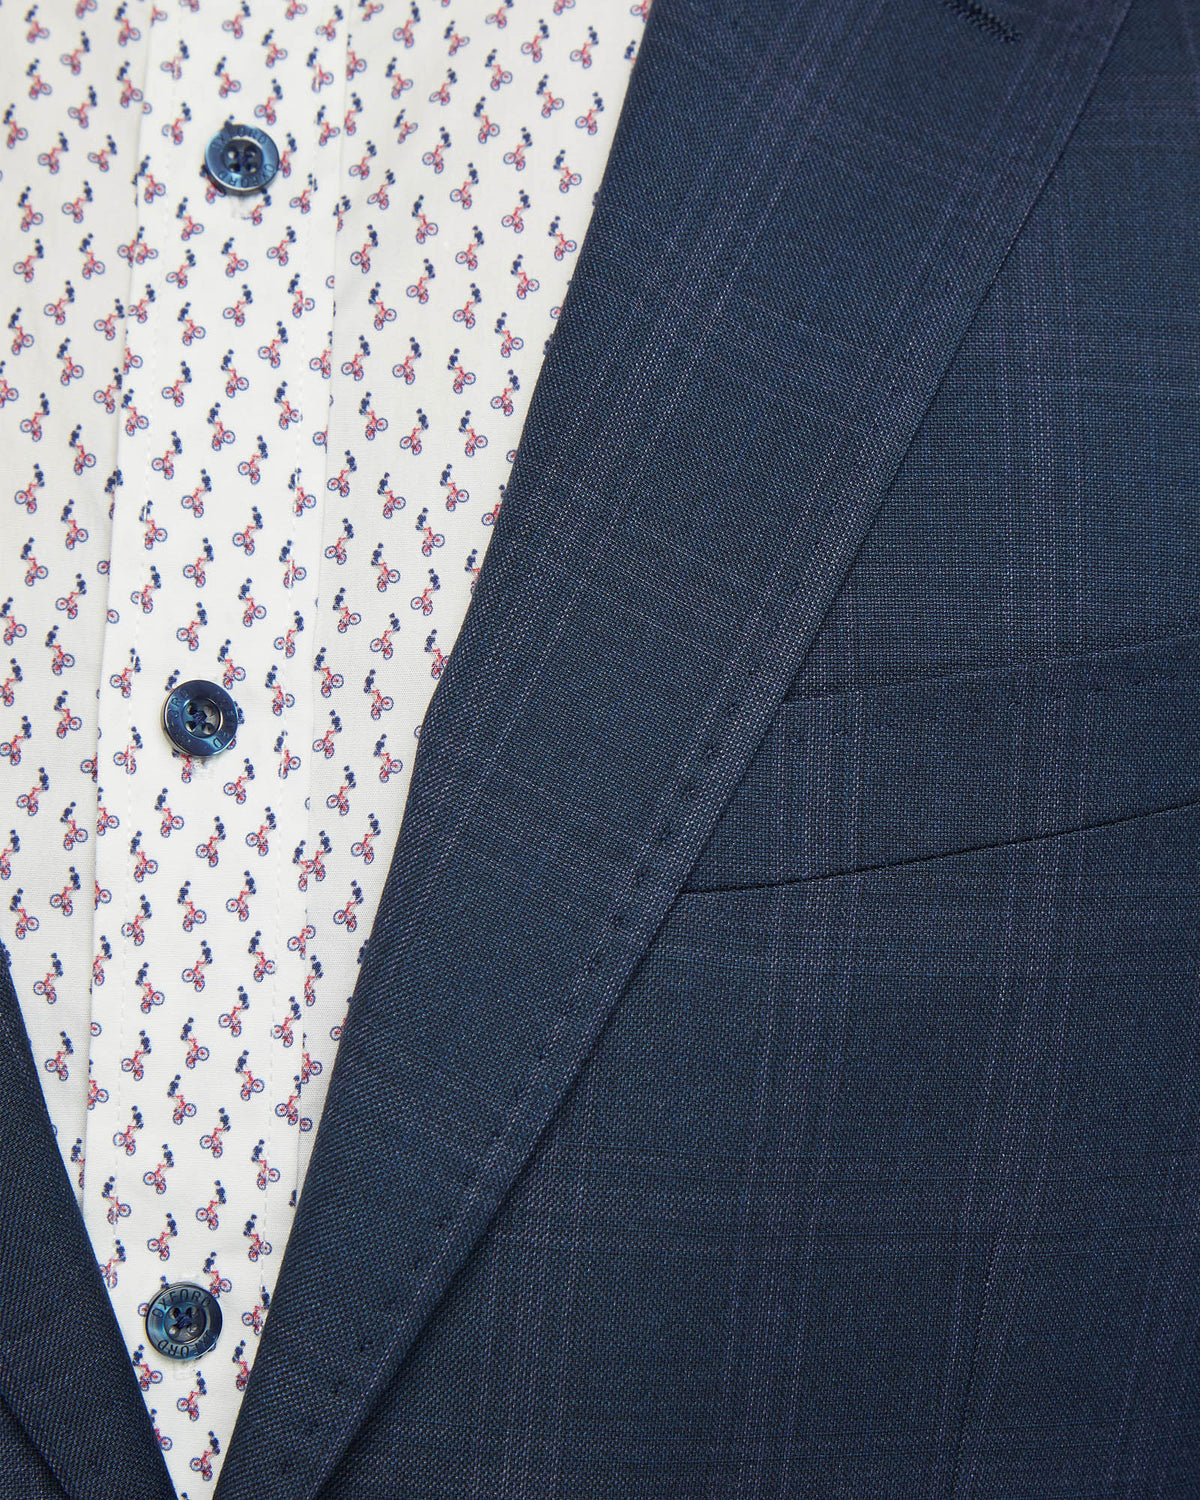 BYRON ECO CHECKED SUIT JACKET NAVY CHECK